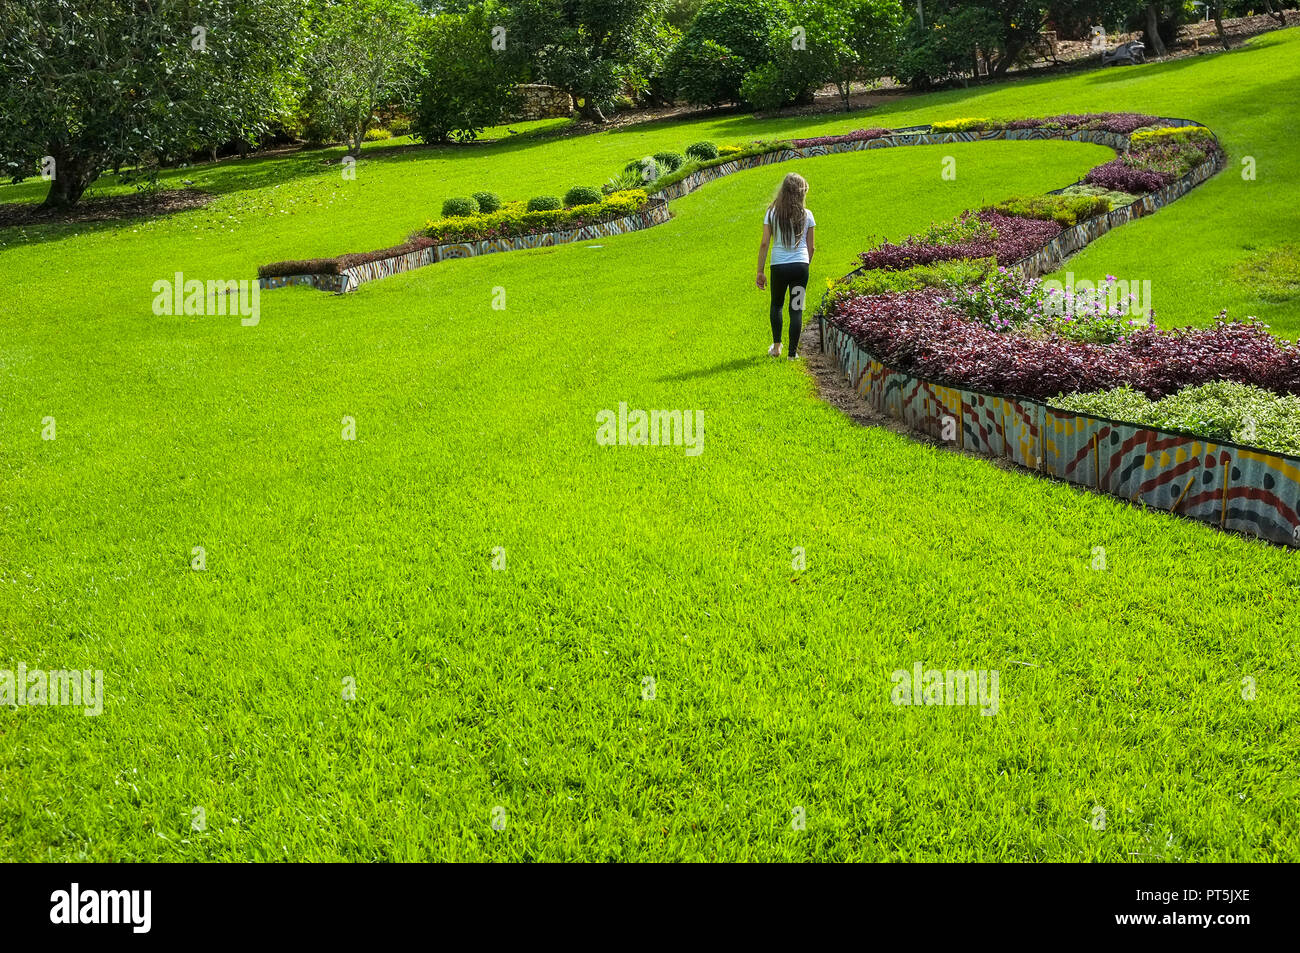 girl-walking-in-the-george-brown-darwin-botanic-gardens-the-gardens-nt-australia-PT5JXE.jpg